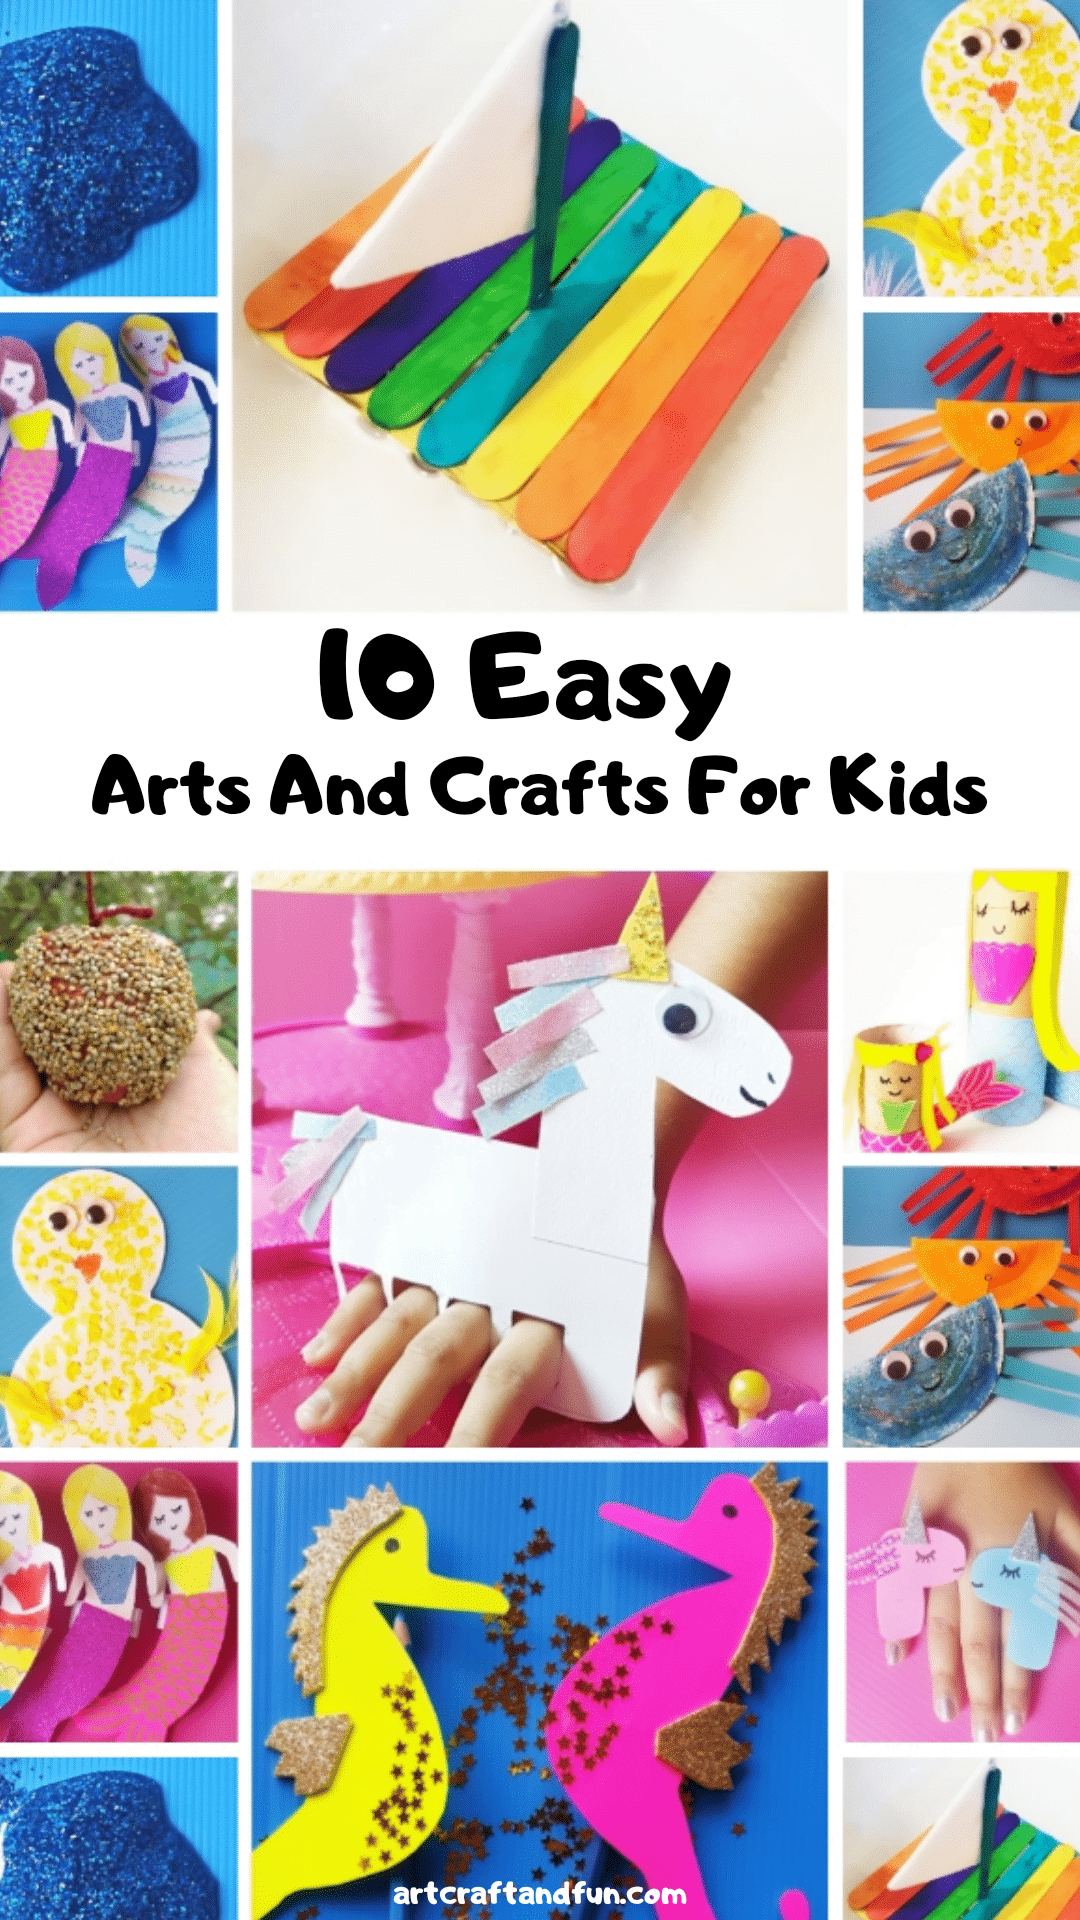 10 Easy Arts And Crafts To Do At Home With Kids